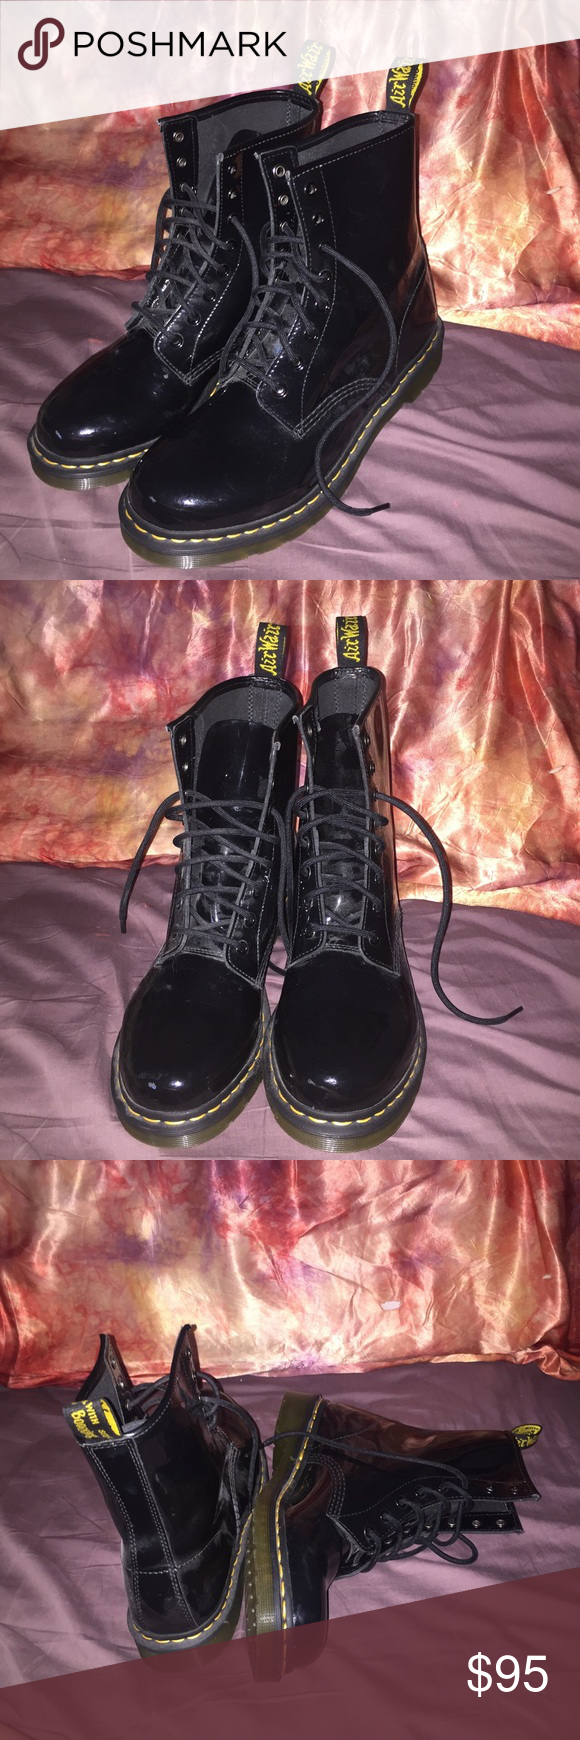 Dr.Martens Dr.marten black patent shiny boots▪️. Worn once not noticeable at all. In very good shape! Size 10. Not worn in yet. 💖 Retail $125 🔥🔥 Dr. Martens Shoes Winter & Rain Boots